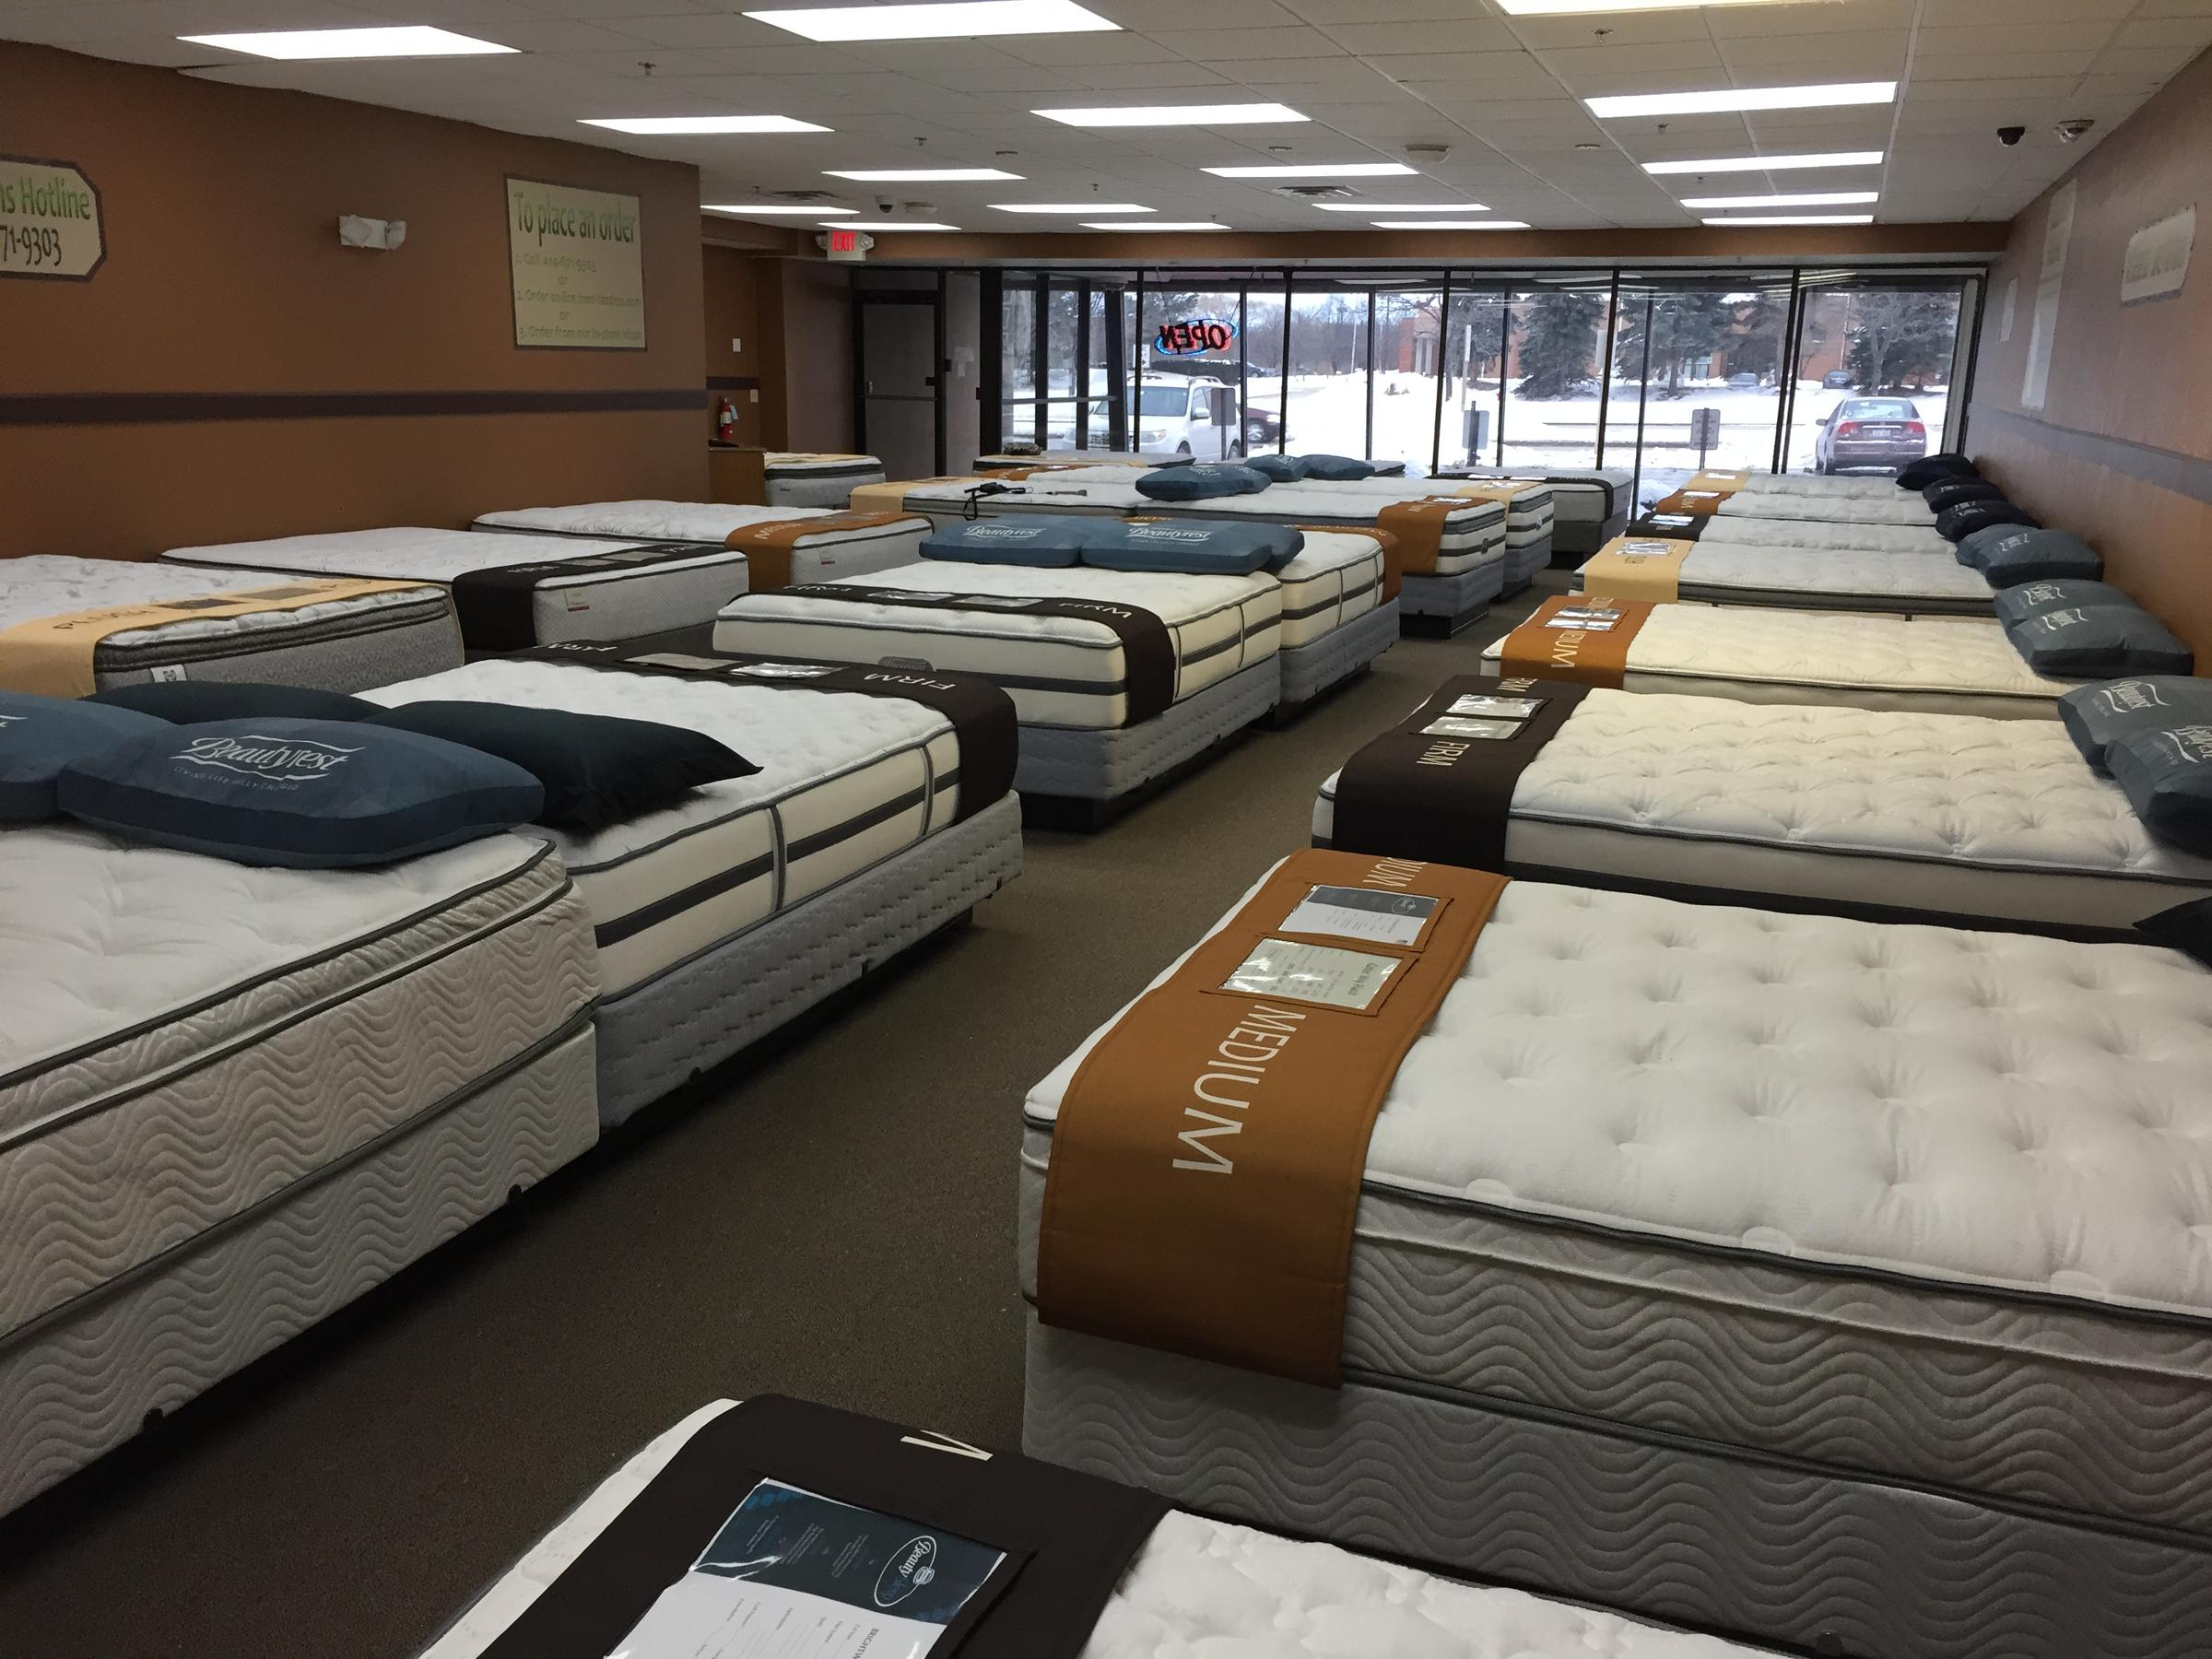 Milwaukee area Mattress Store Tries quotEmployee Freequot Showrooms WUWM